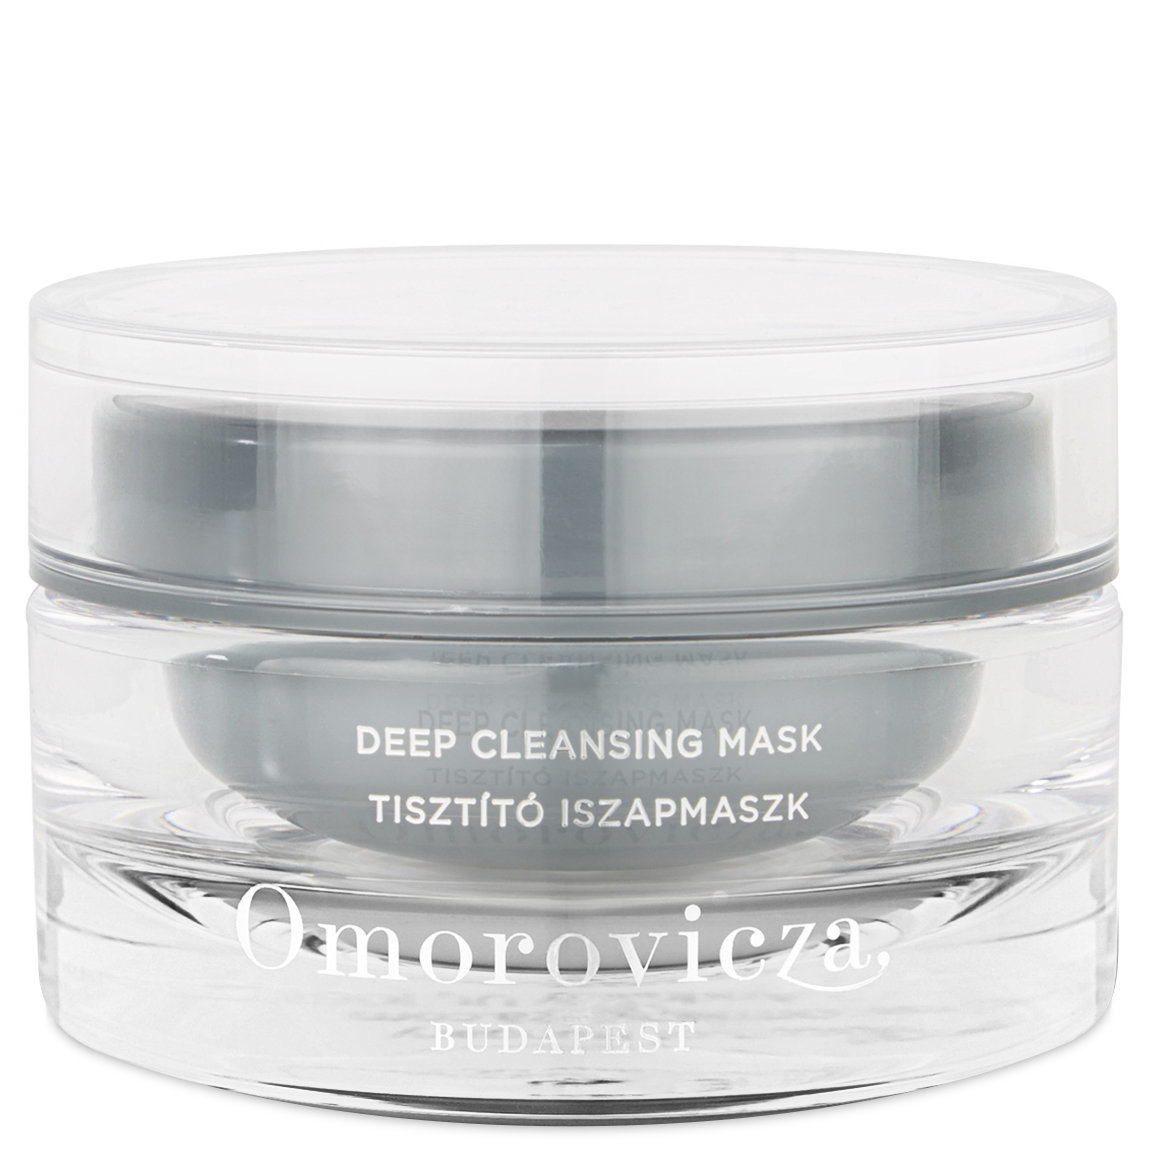 Omorovicza Deep Cleansing Mask 100 ml alternative view 1 - product swatch.